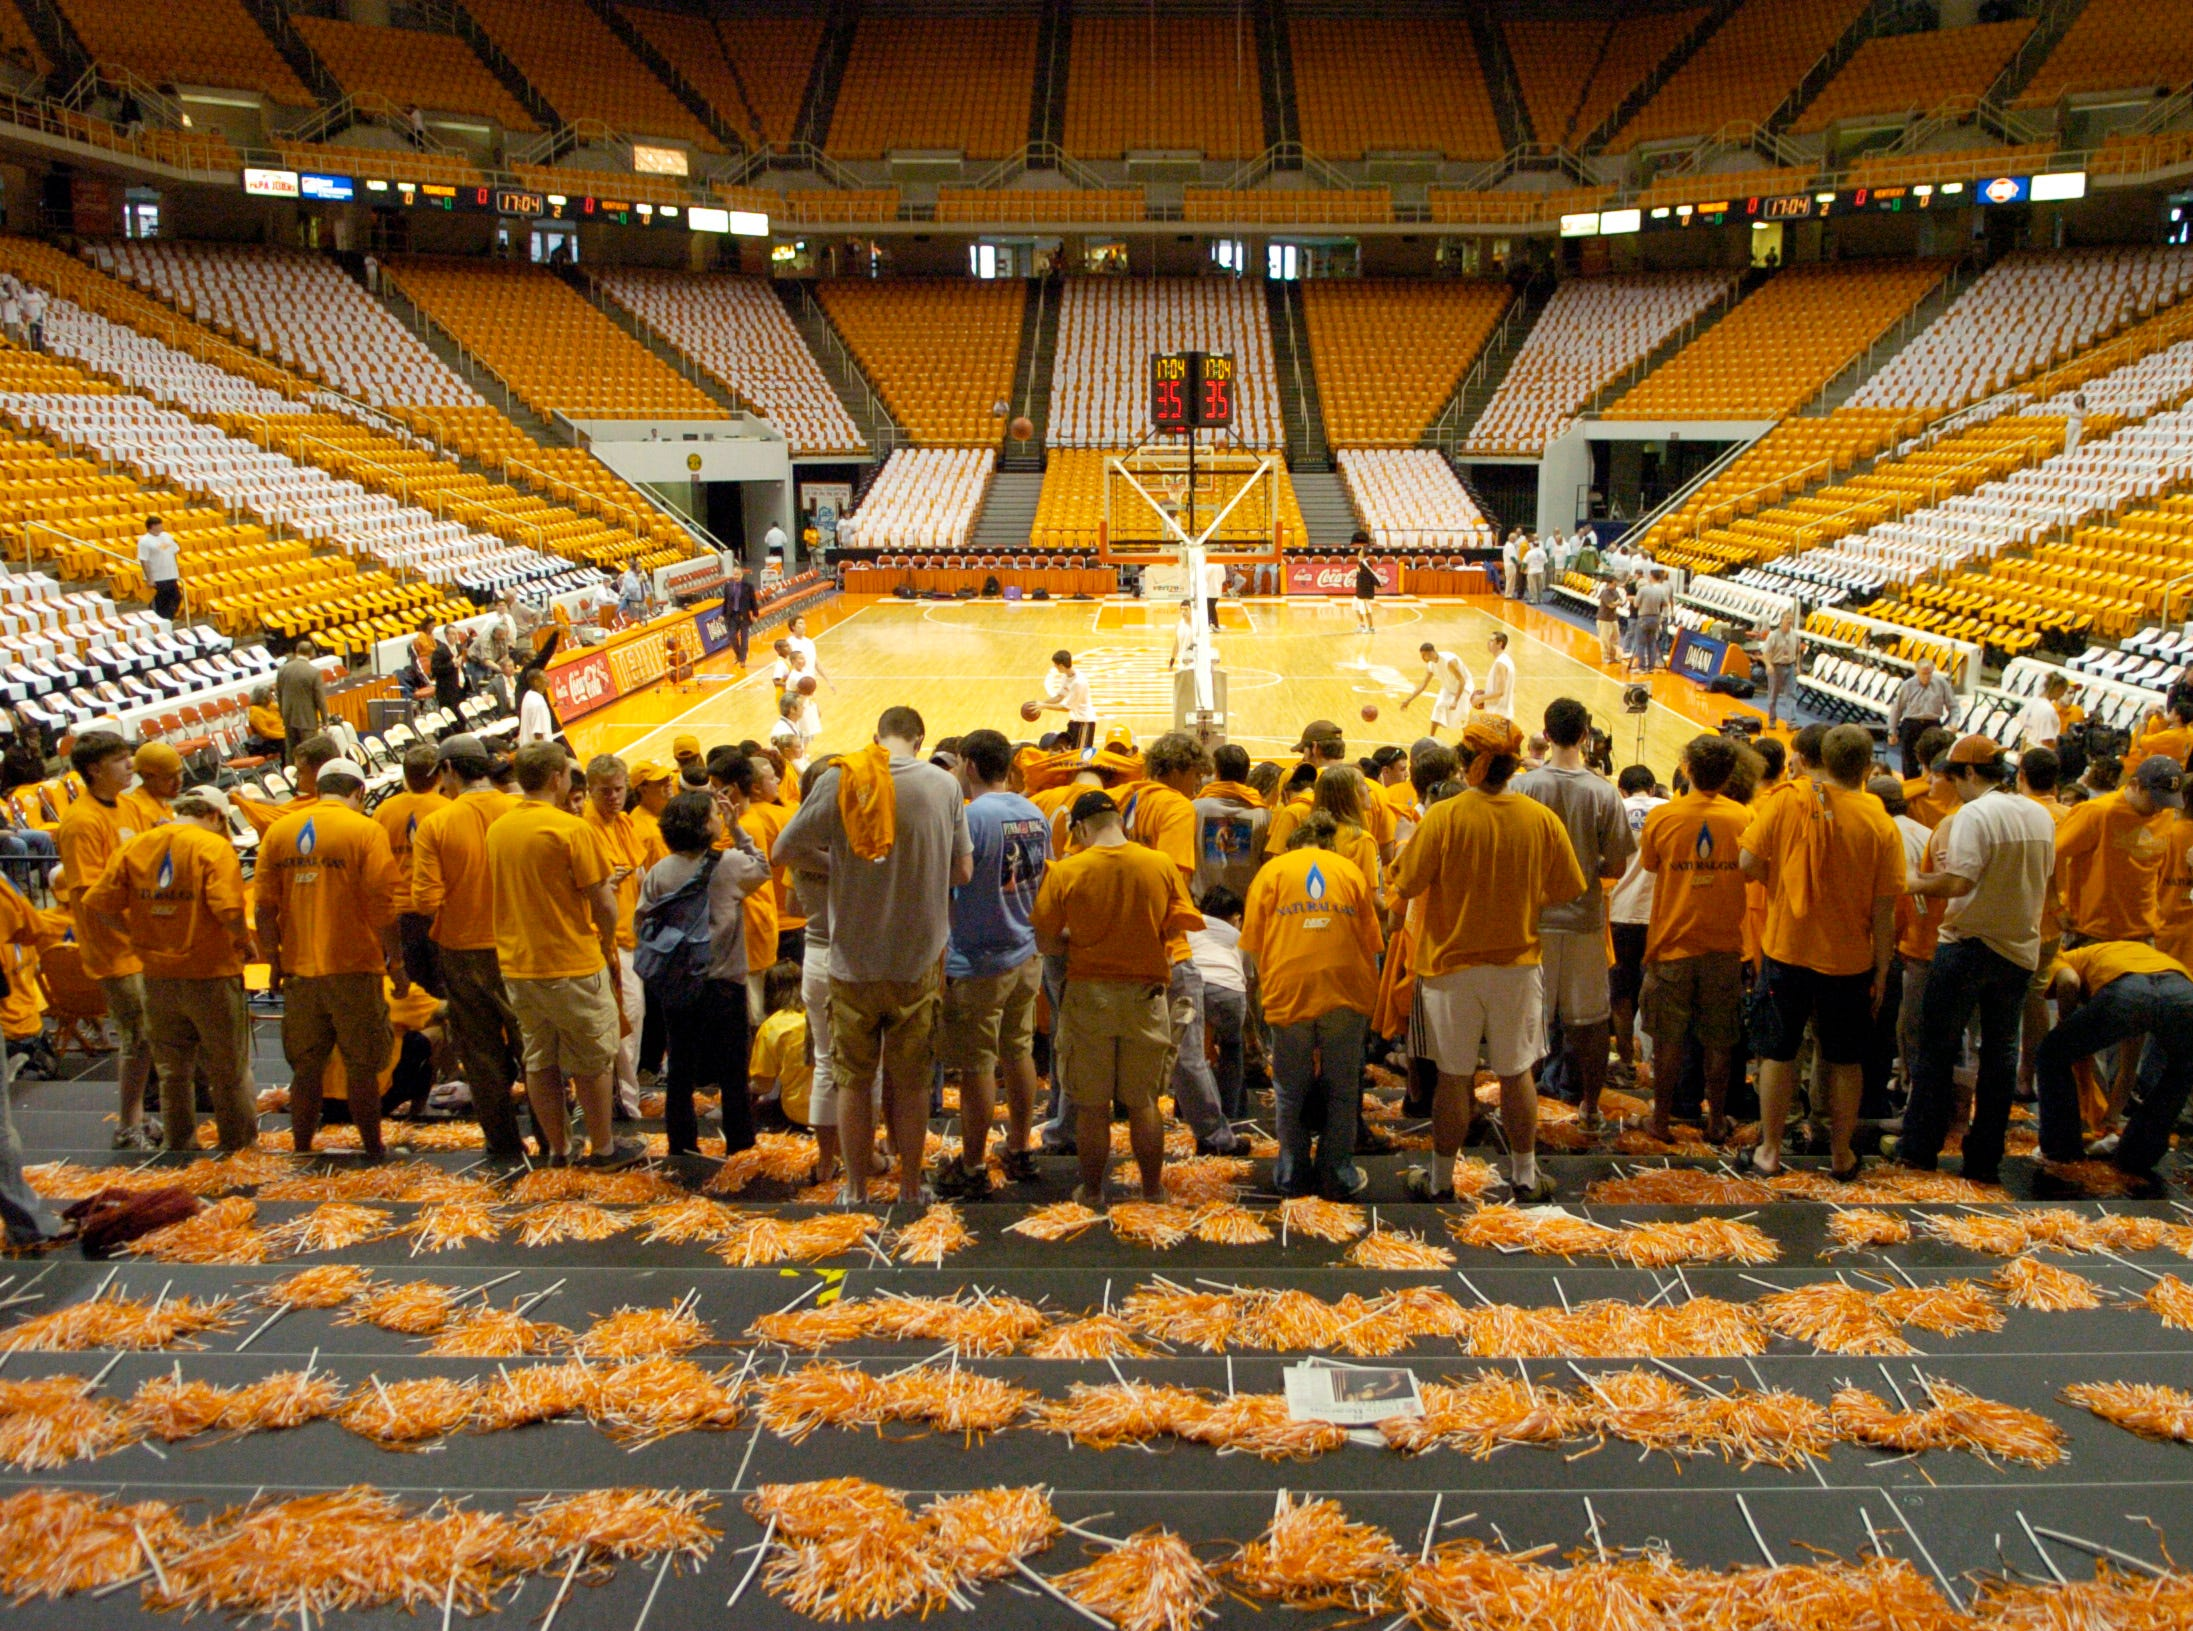 University of Tennessee student fans arrive two hours before the Kentucky game after waiting for hours. 2006